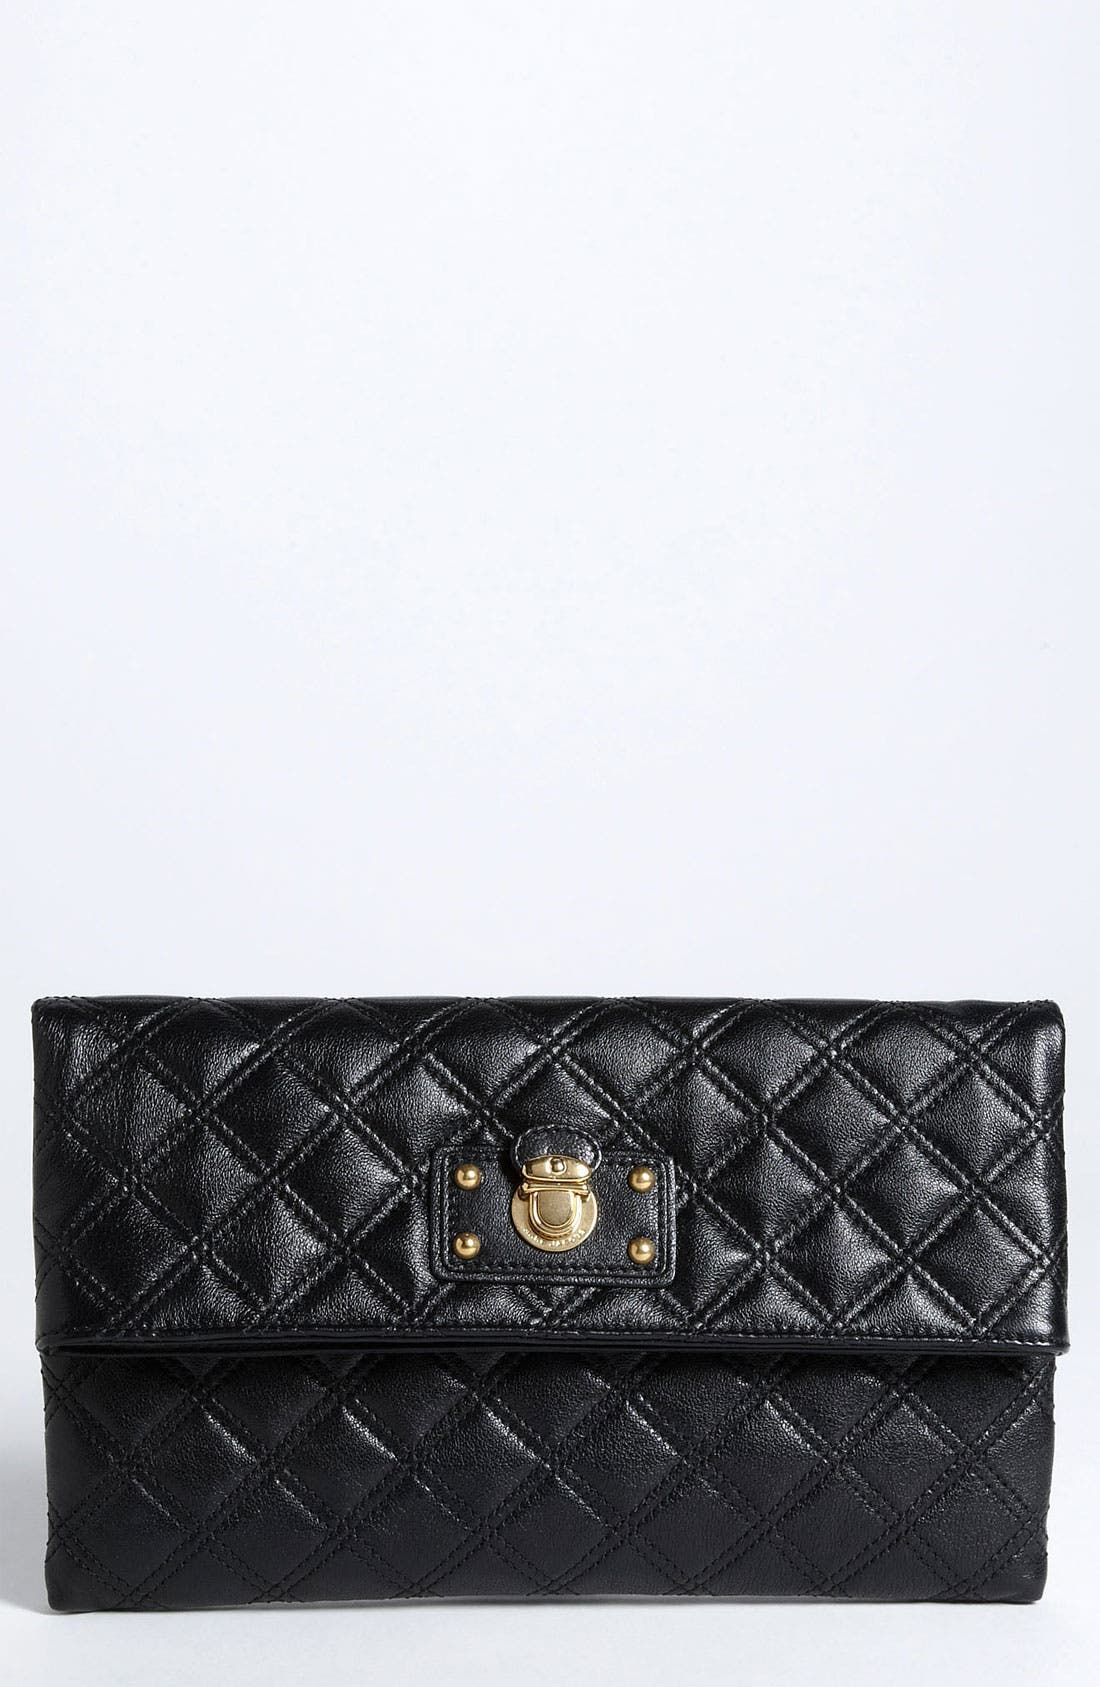 Alternate Image 1 Selected - MARC JACOBS 'Large Eugenie' Quilted Leather Clutch